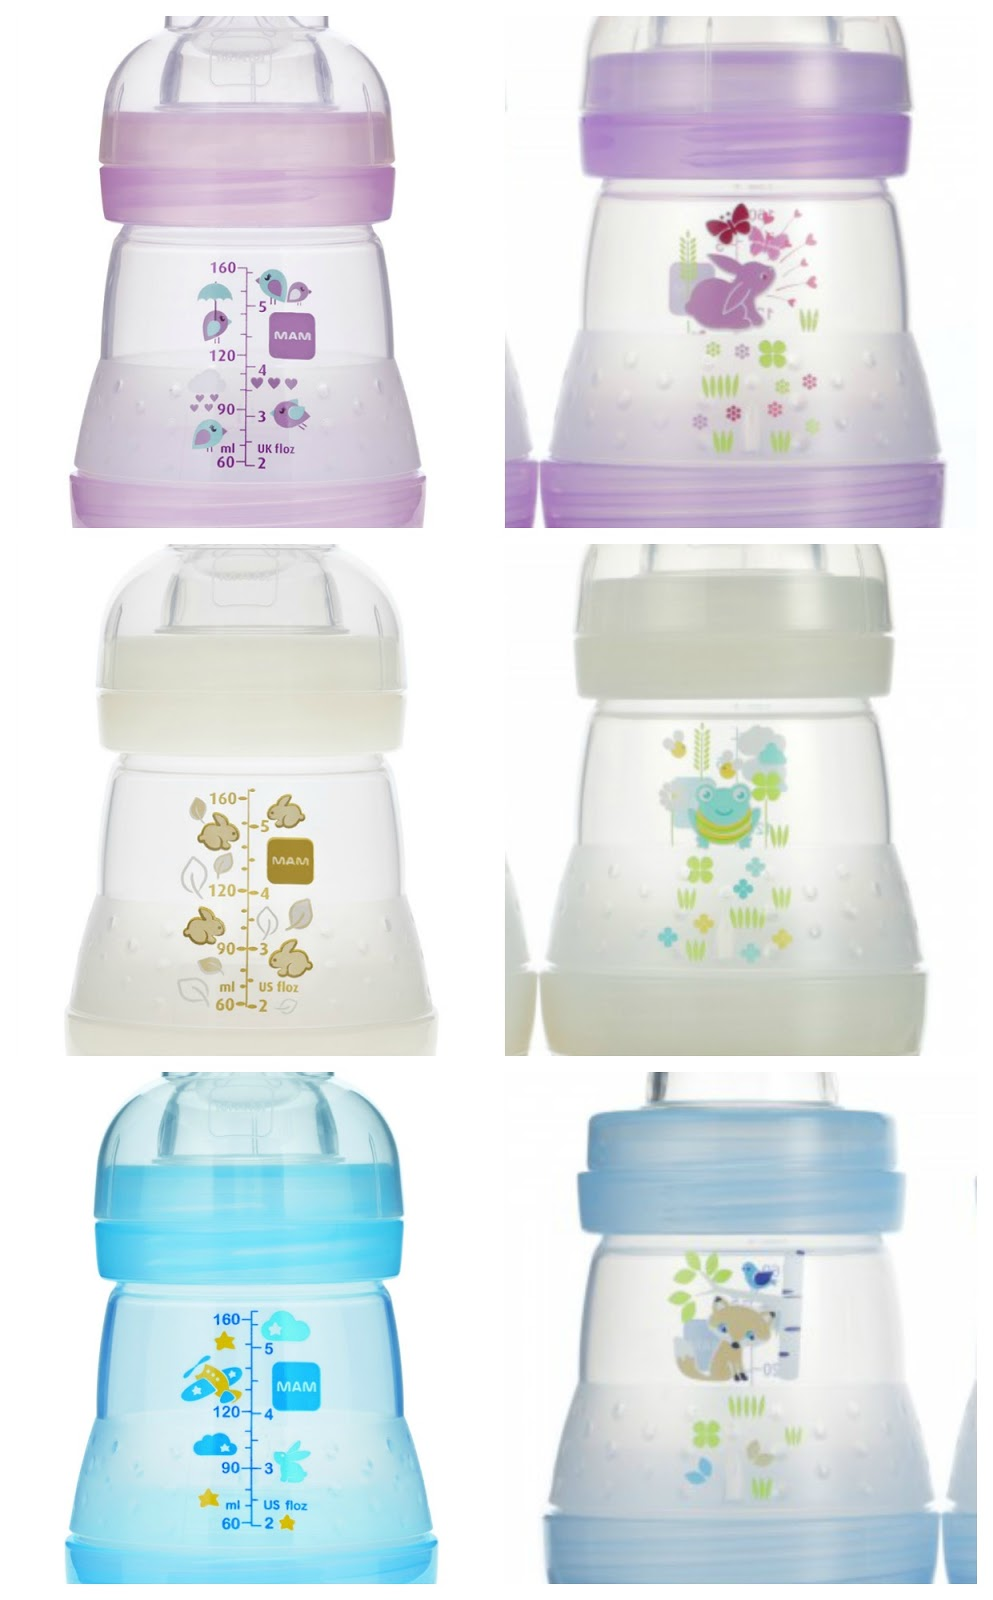 Cut Craft Create Mam Anti Colic Bottles Review Buy 1 Get Free Bottle Pink Like I Said These Are The Only Have Used With My Children For Last 25 Years And Personally Recommend Them To Anyone